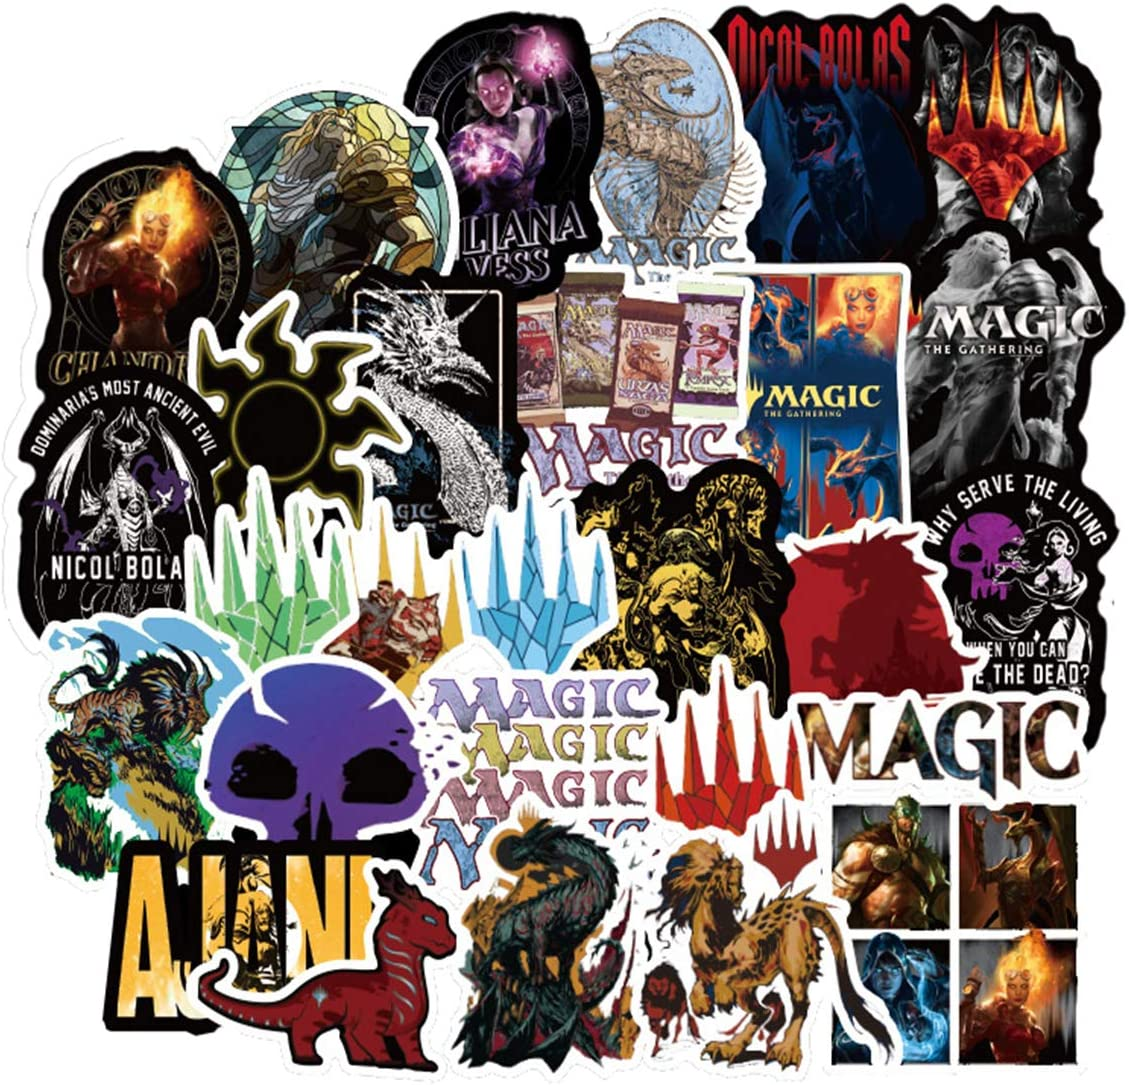 MagicTheGathering Stickers/Decals (55 pcs) for Laptop Skateboard Snowboard Water Bottle Phone Car Bicycle Luggage Guitar Computer as Gift(Magic)